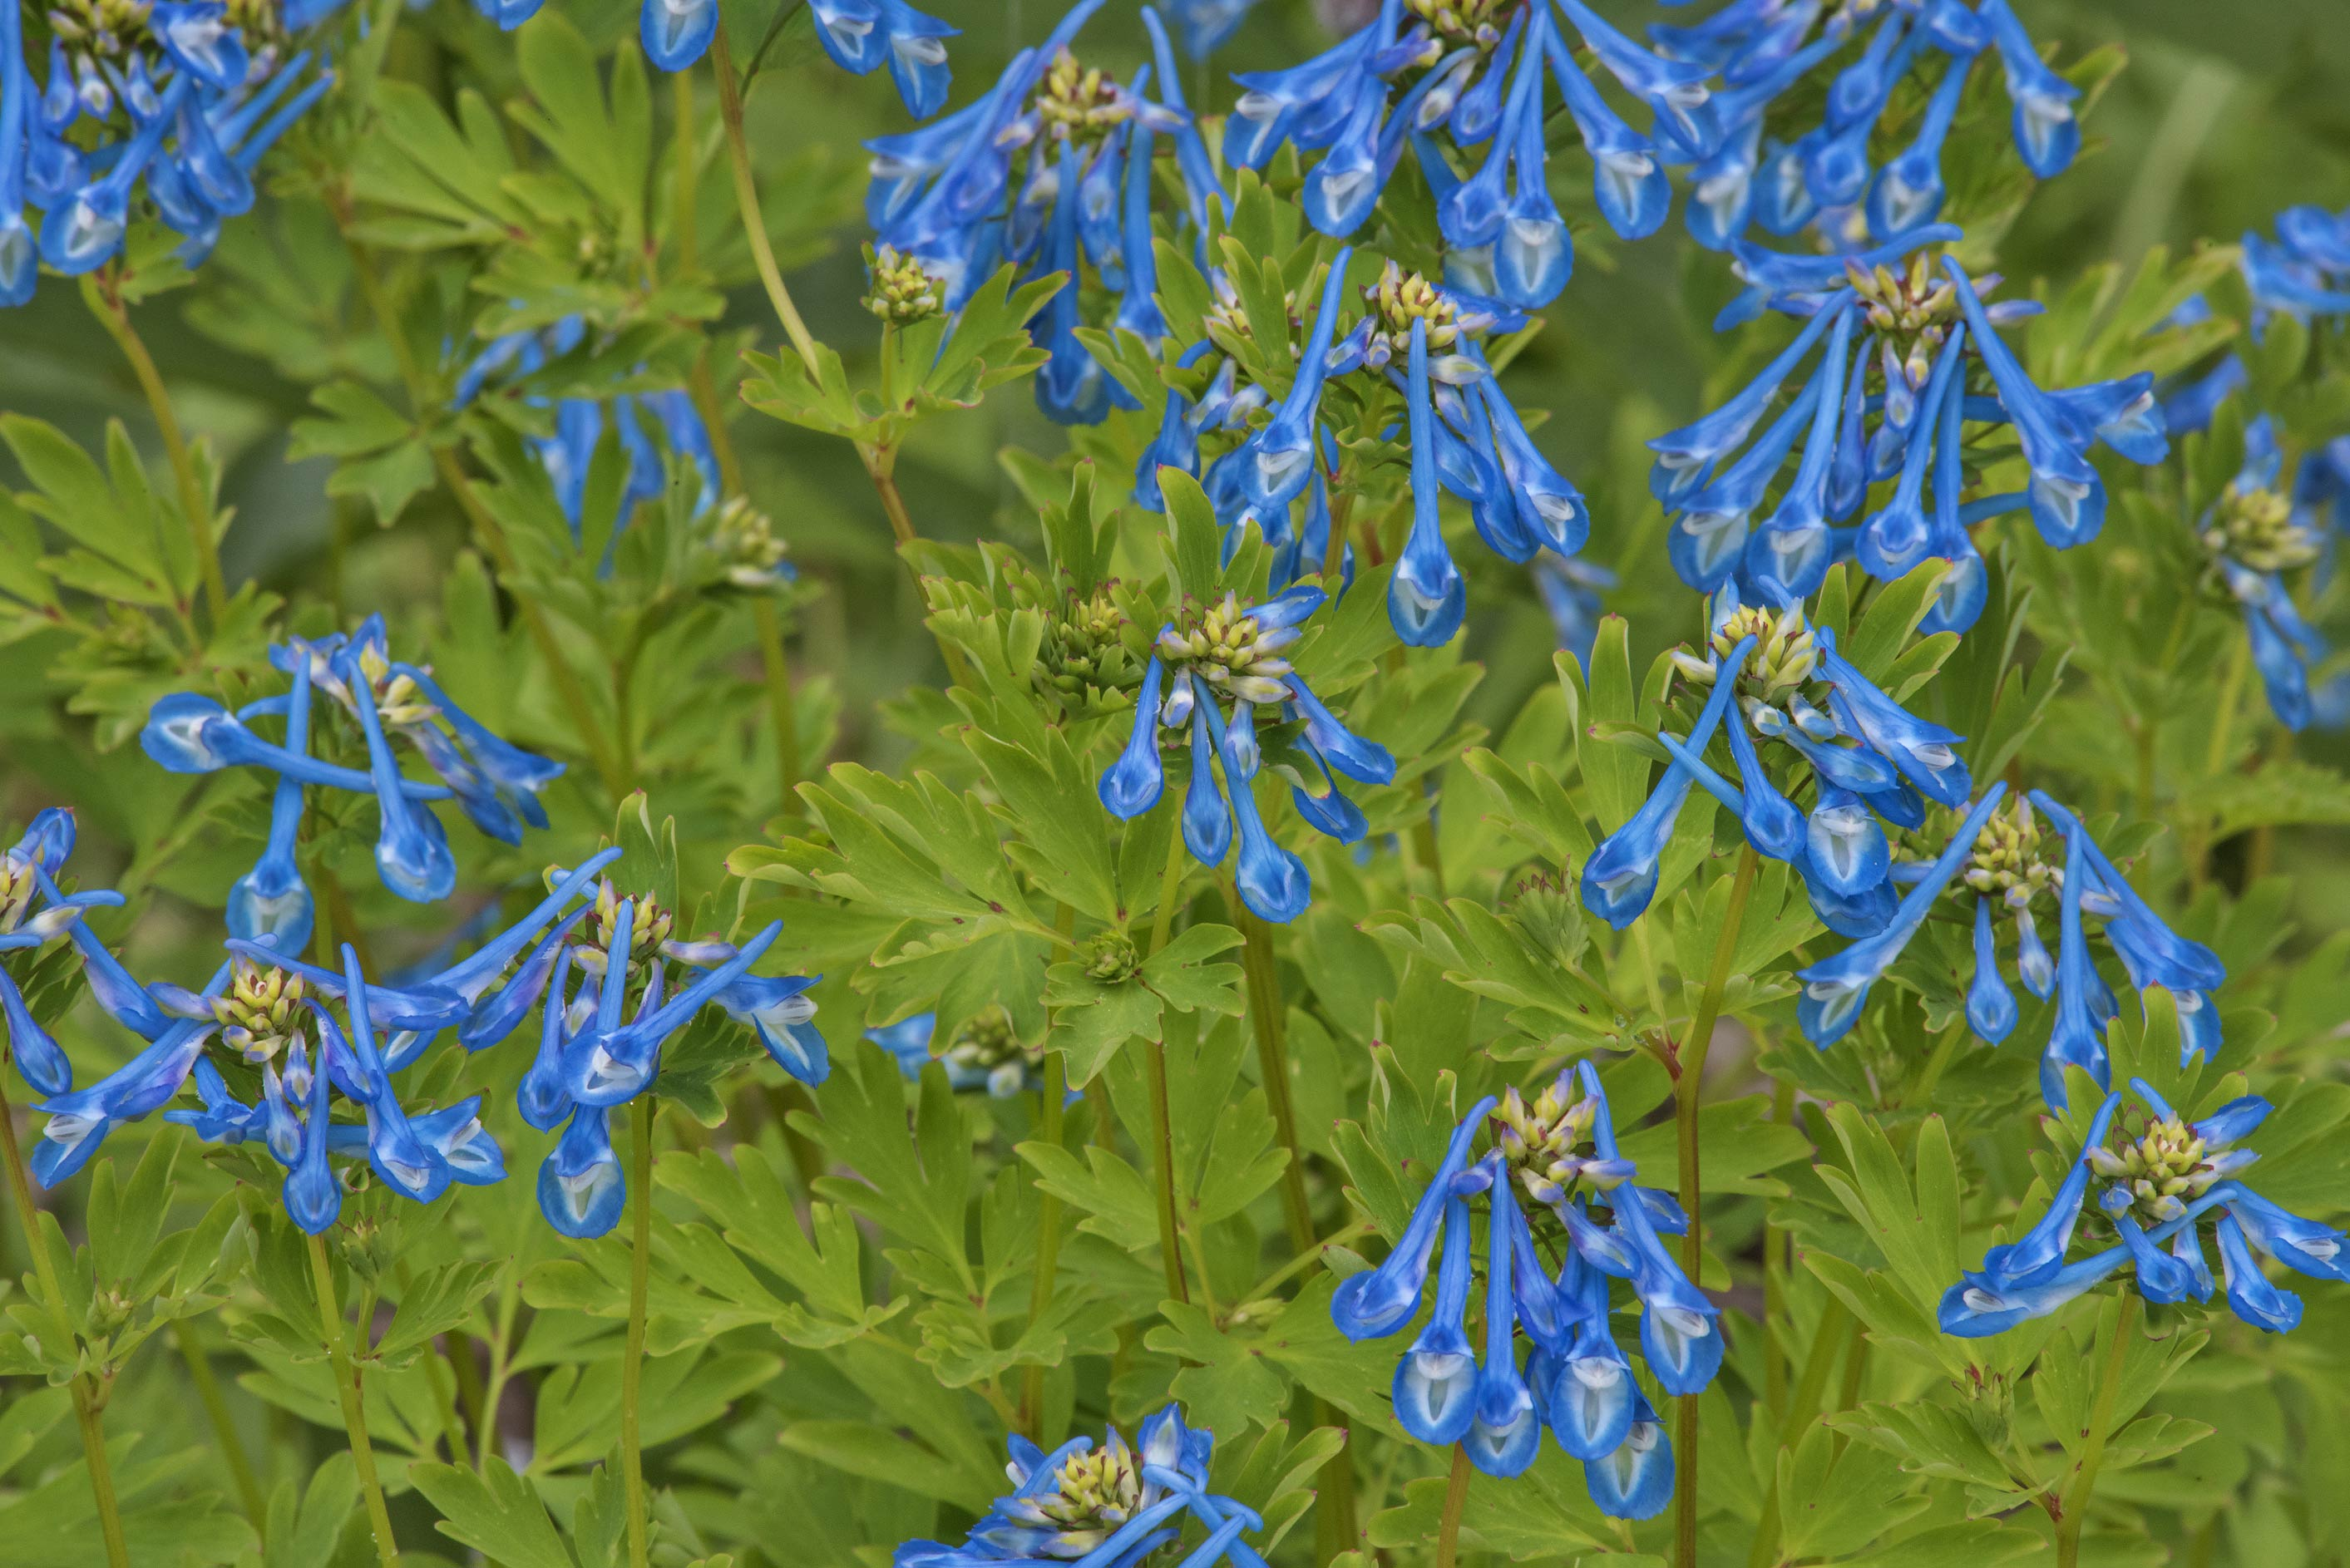 Blue flowers of fumewort (Corydalis) in Botanic...Institute. St.Petersburg, Russia